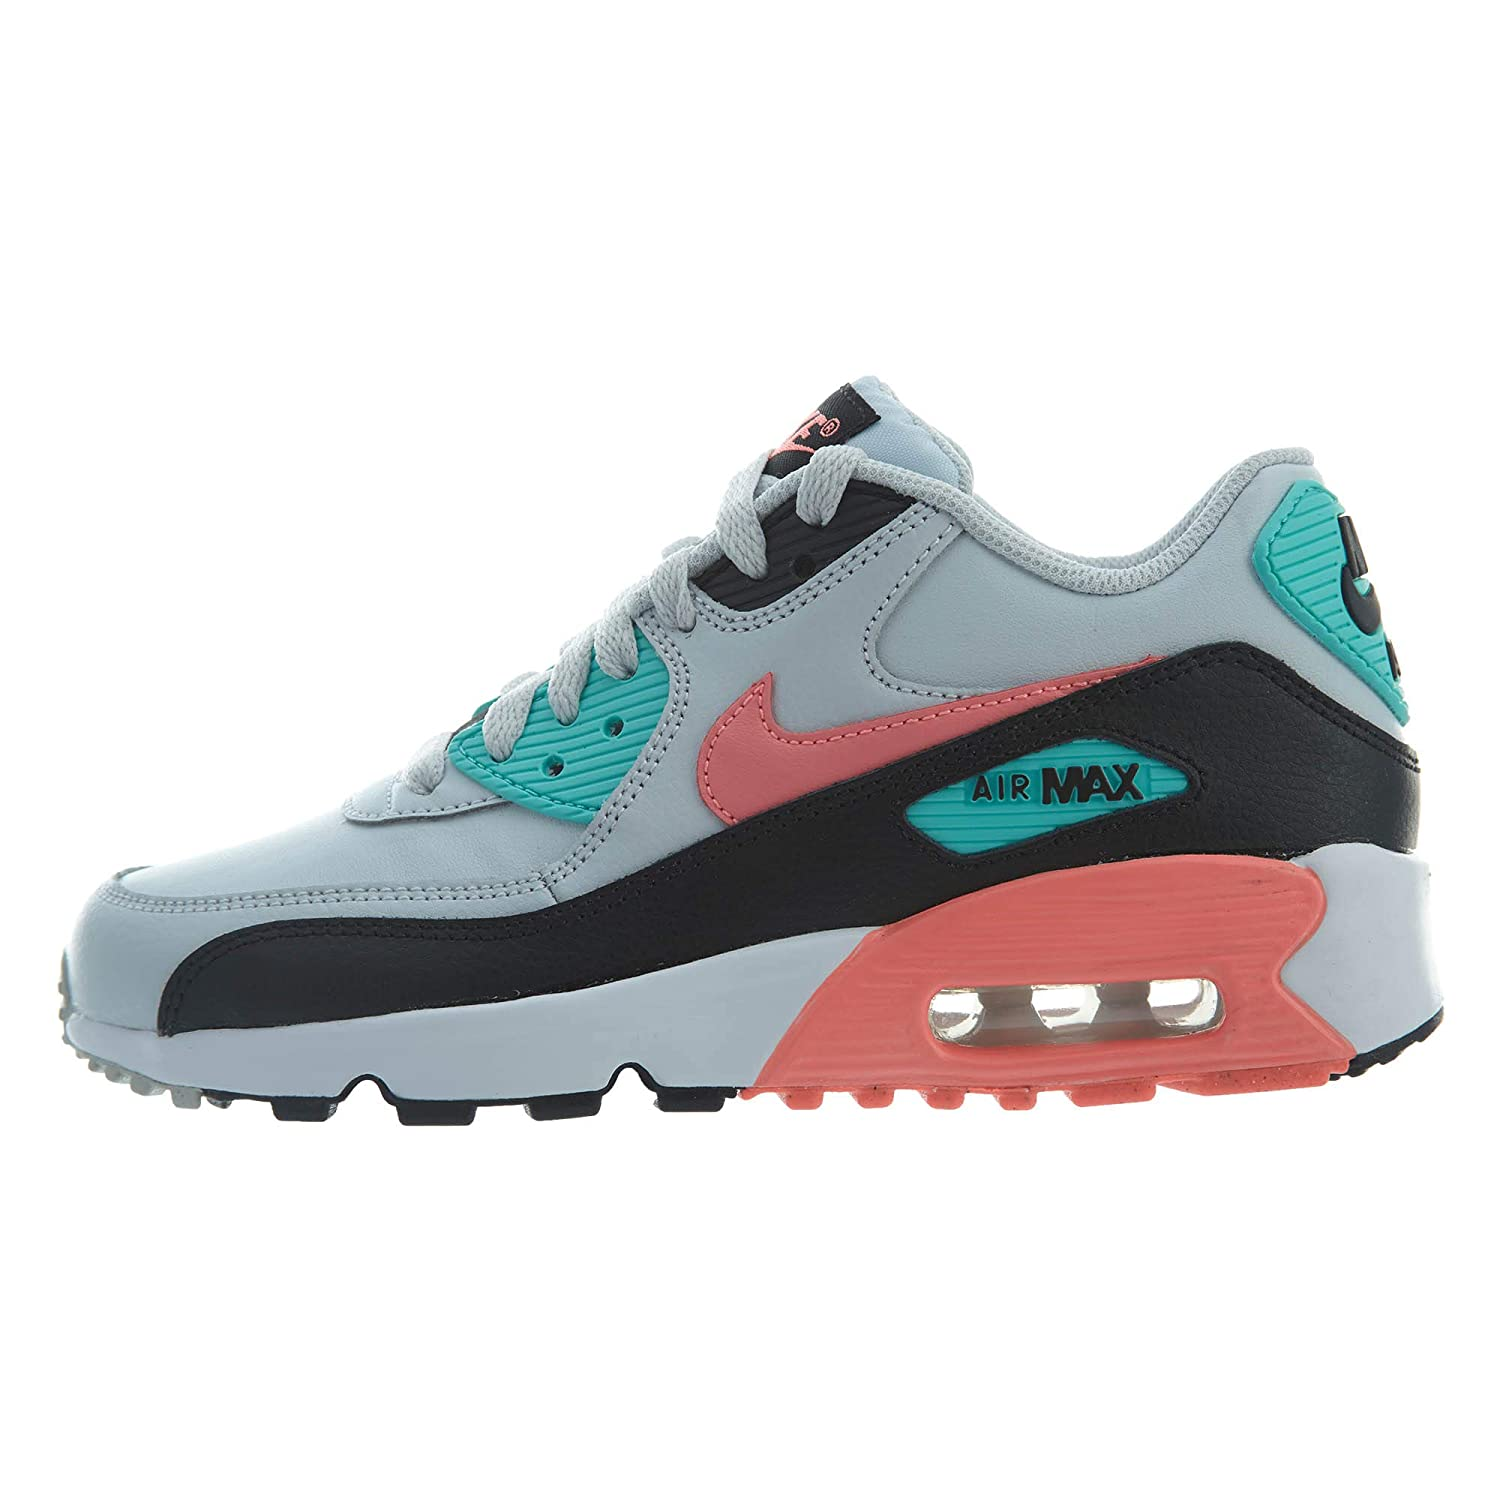 a8cfbfc82c6 Amazon.com: Nike Air Max 90 Leather (Kids): Sports & Outdoors